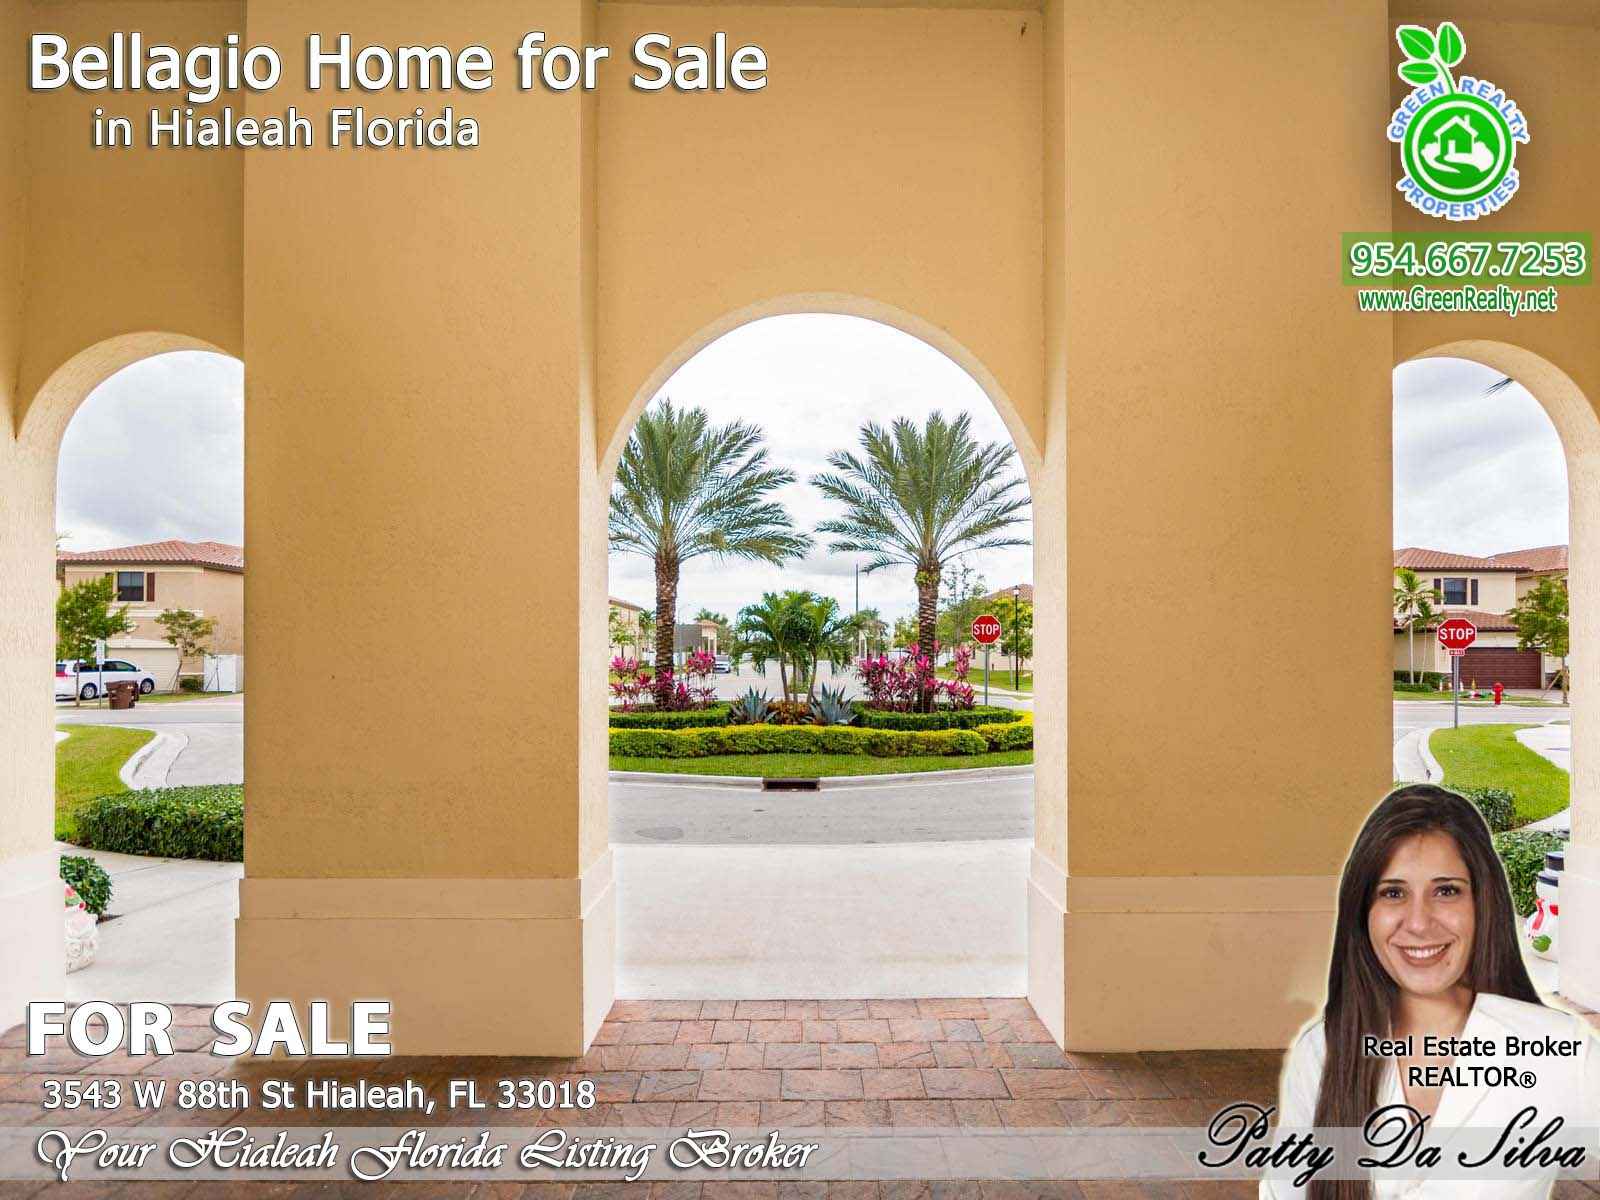 South florida homes for sale by broker Patty da silva of green realty properties (12)